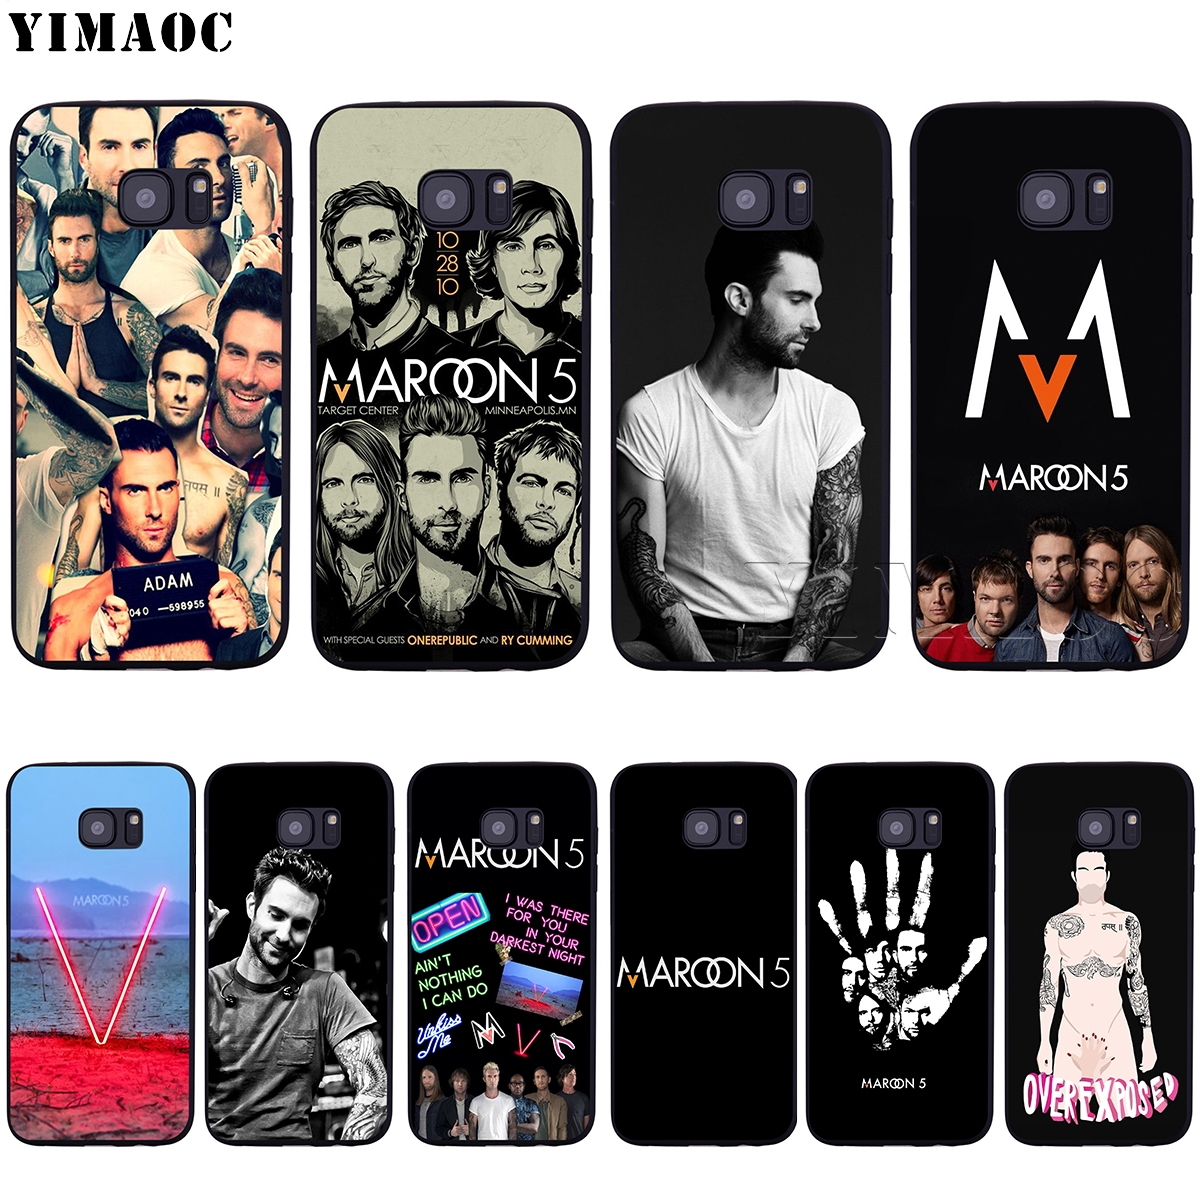 YIMAOC Maroon 5 Adam Levine Soft Silicone Case for Samsung Galaxy S6 S7 Edge S8 S9 Plus A3 A5 2016 2017